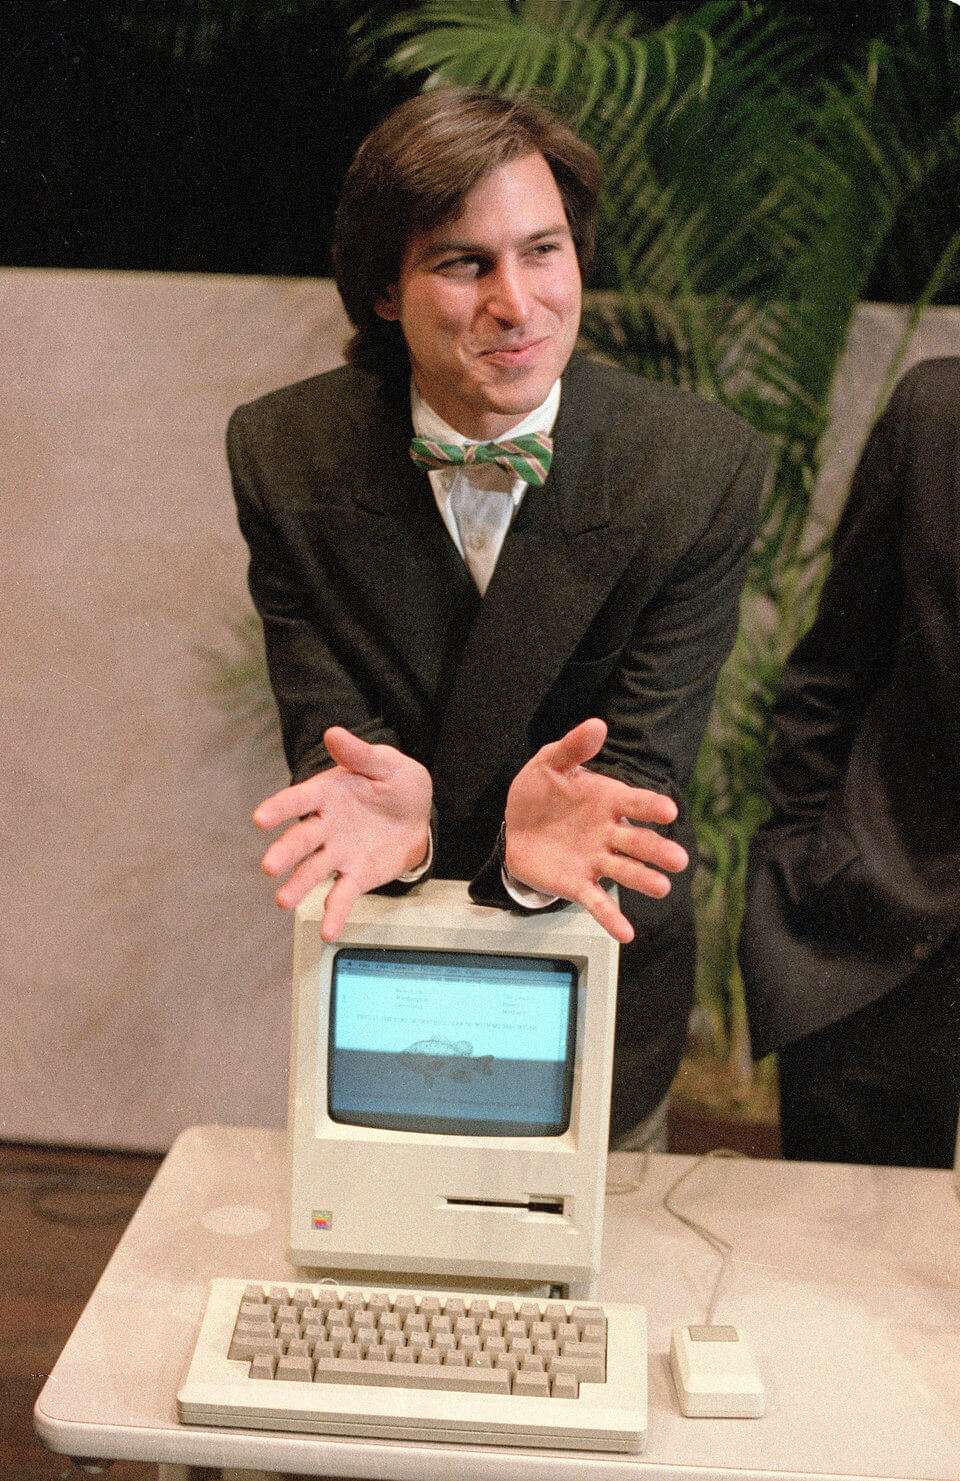 history-of-apple-in-pictures-apple-macintosh